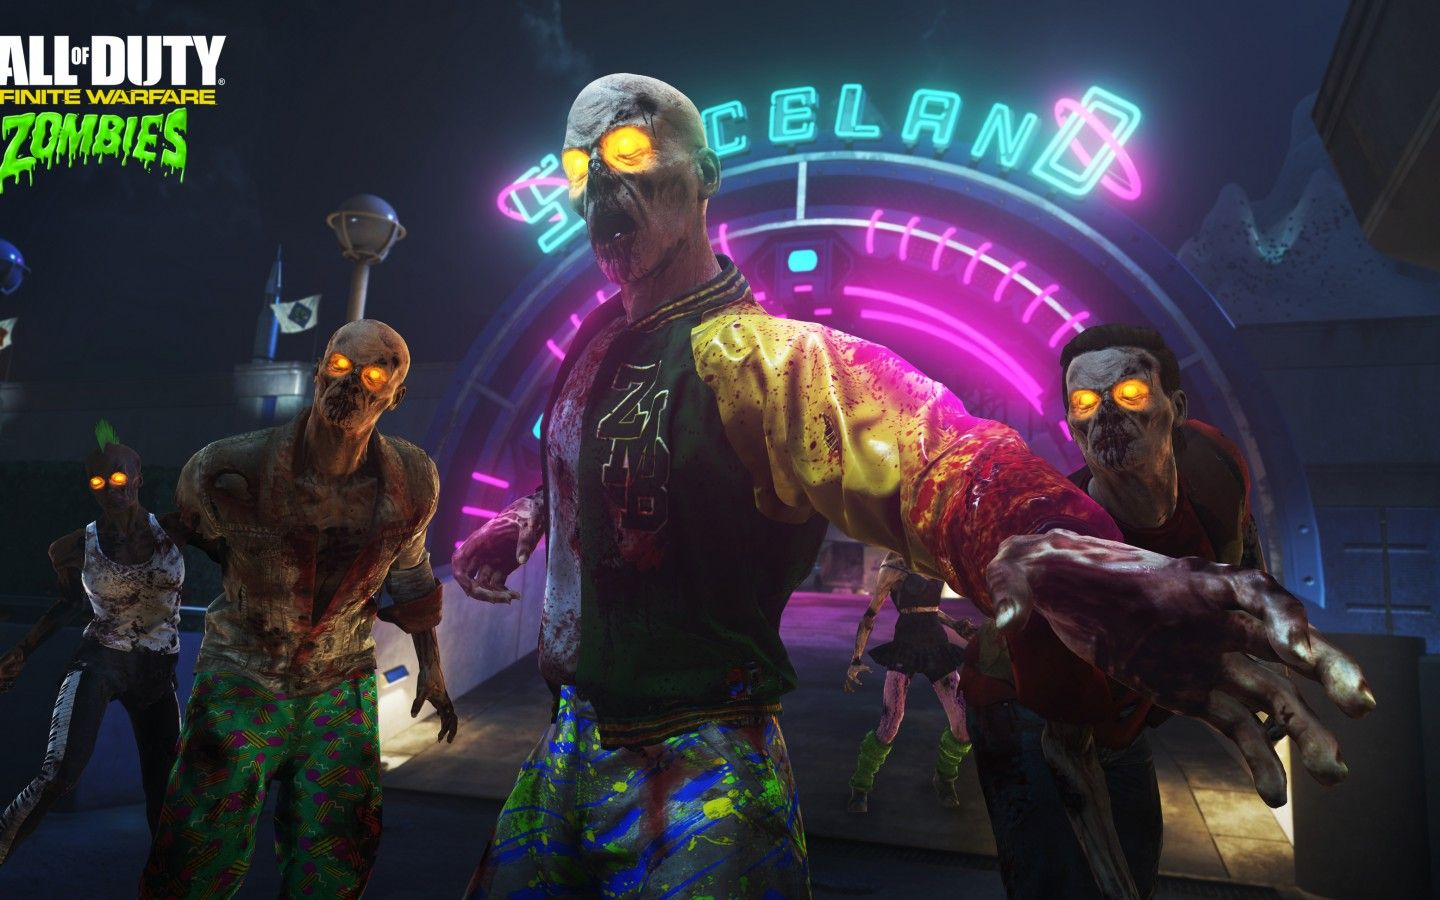 Black Ops 3 Zombies Wallpaper Hd Resolution Wallpaper Images Hd Call Of Duty Cool Backgrounds